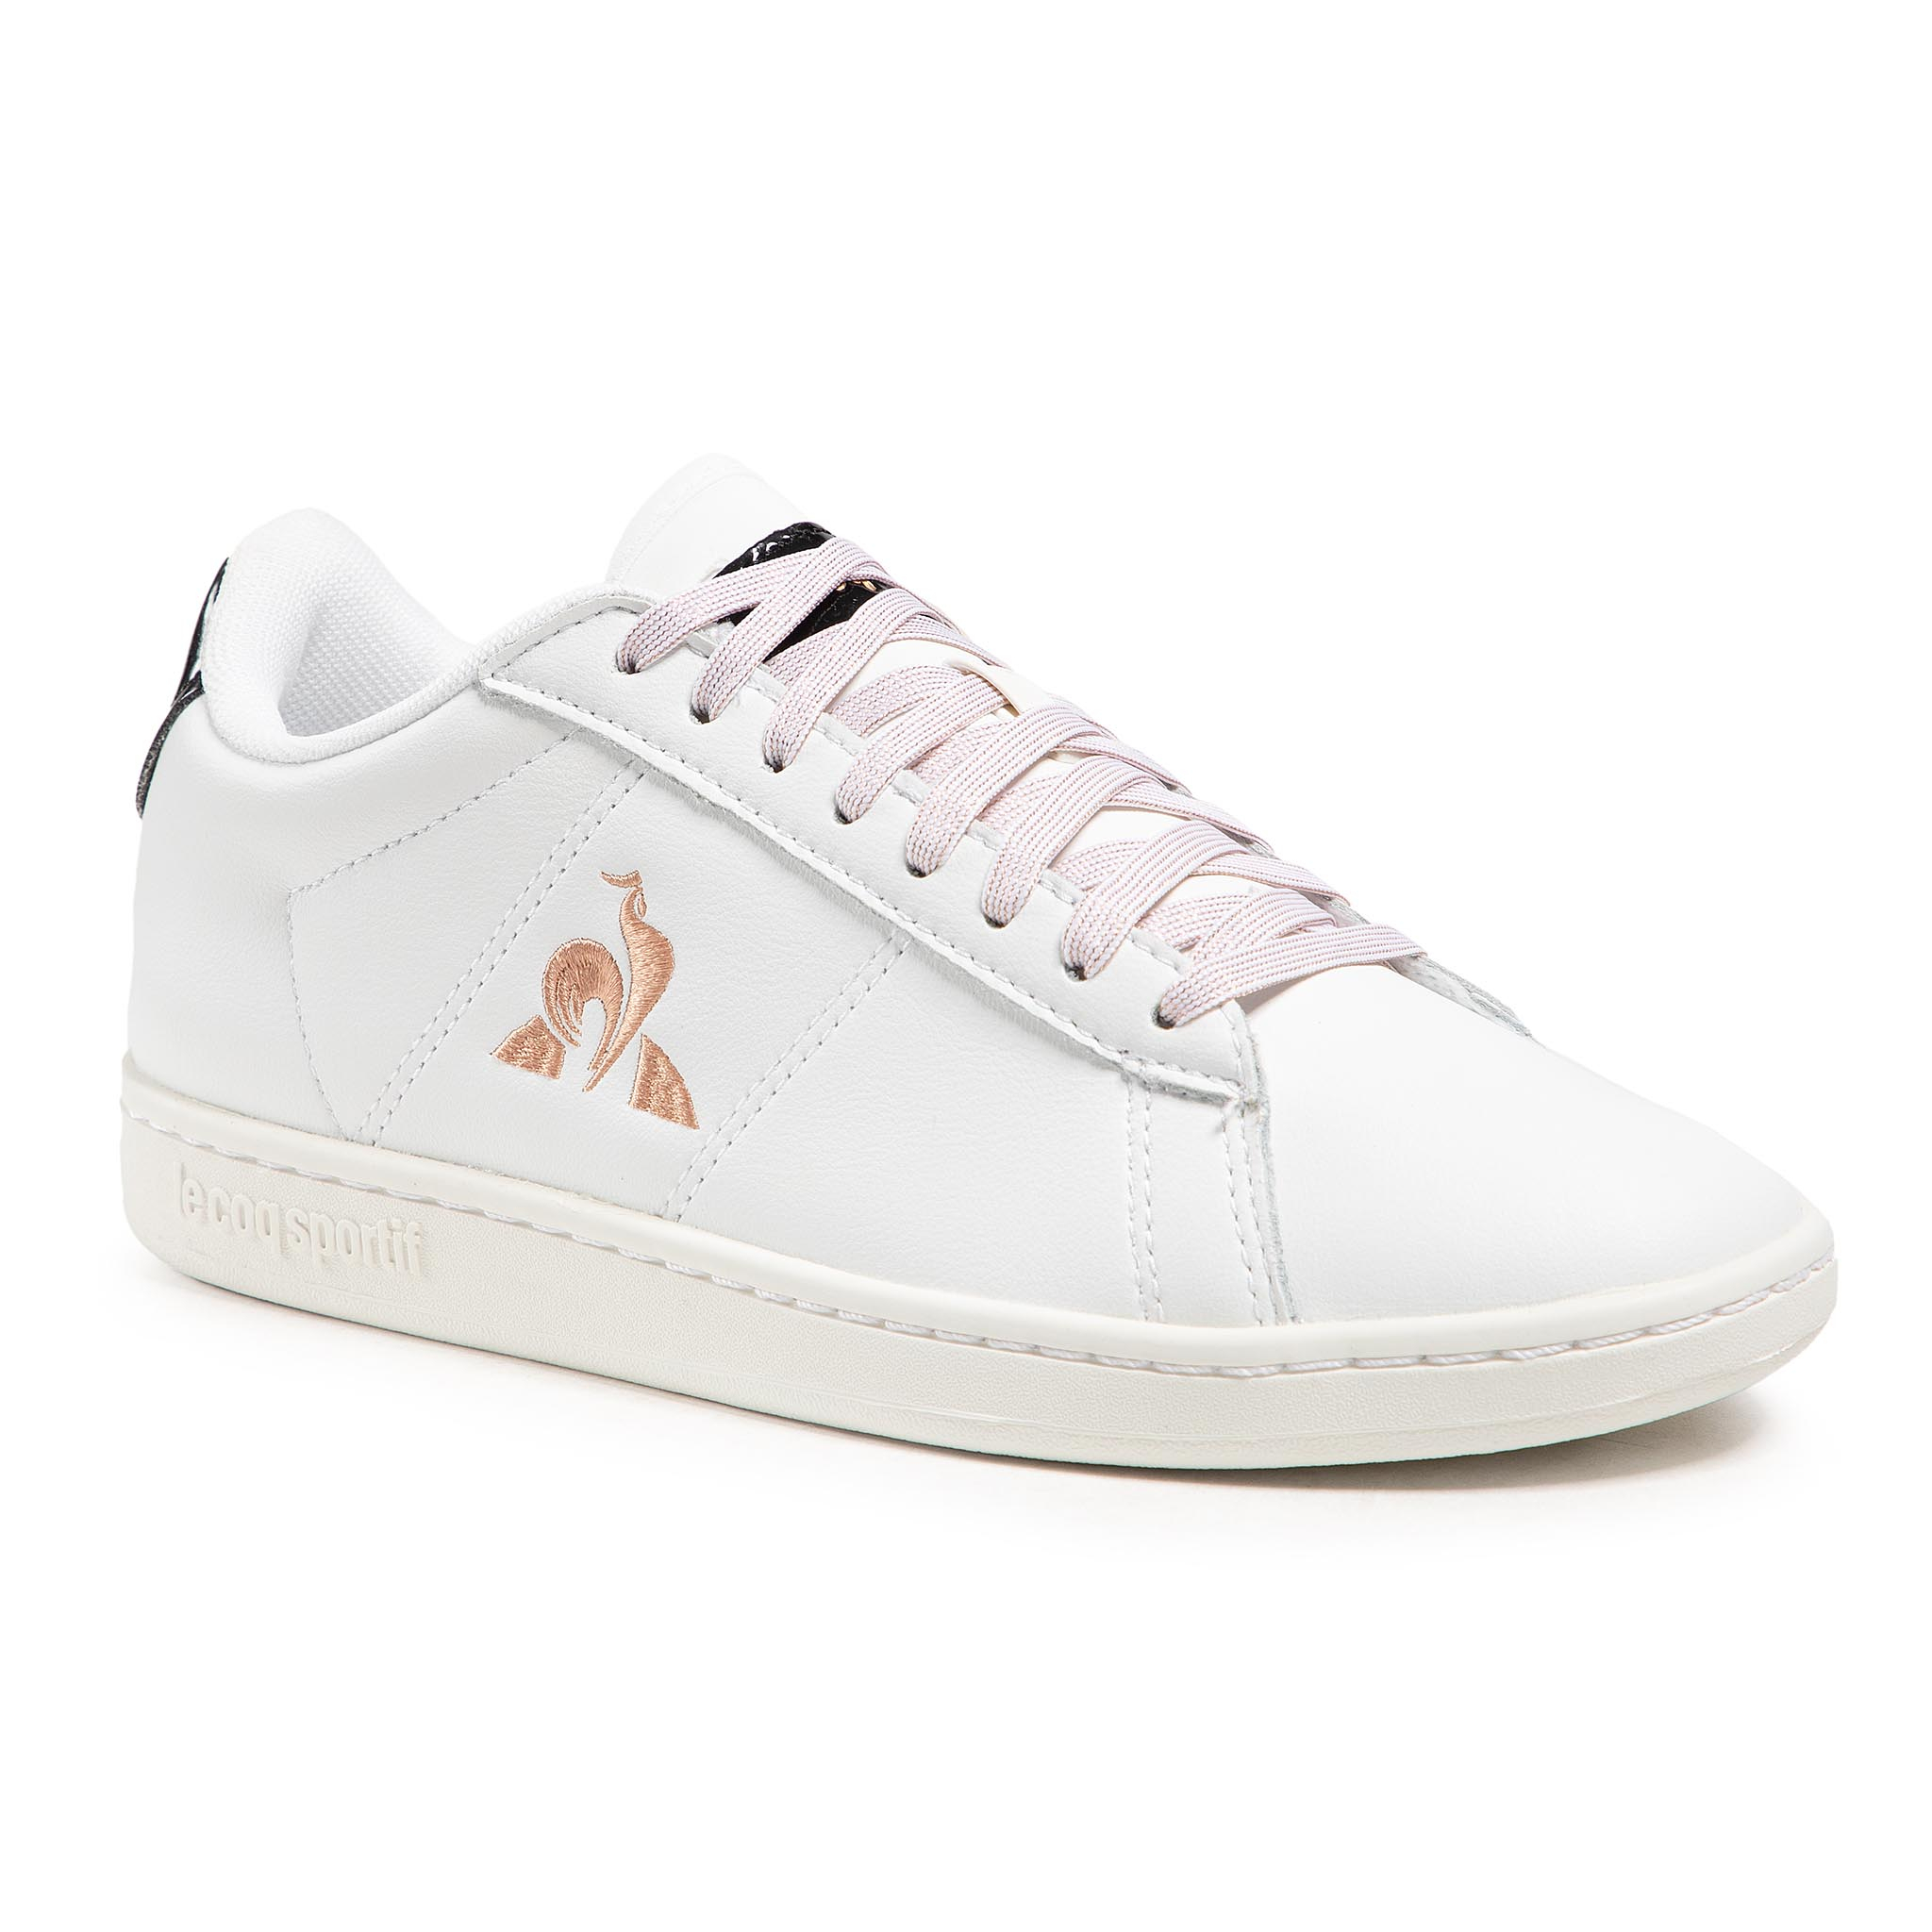 Sneakers LE COQ SPORTIF - Courtset W Patent 2110126  Optical White/Rose Gold